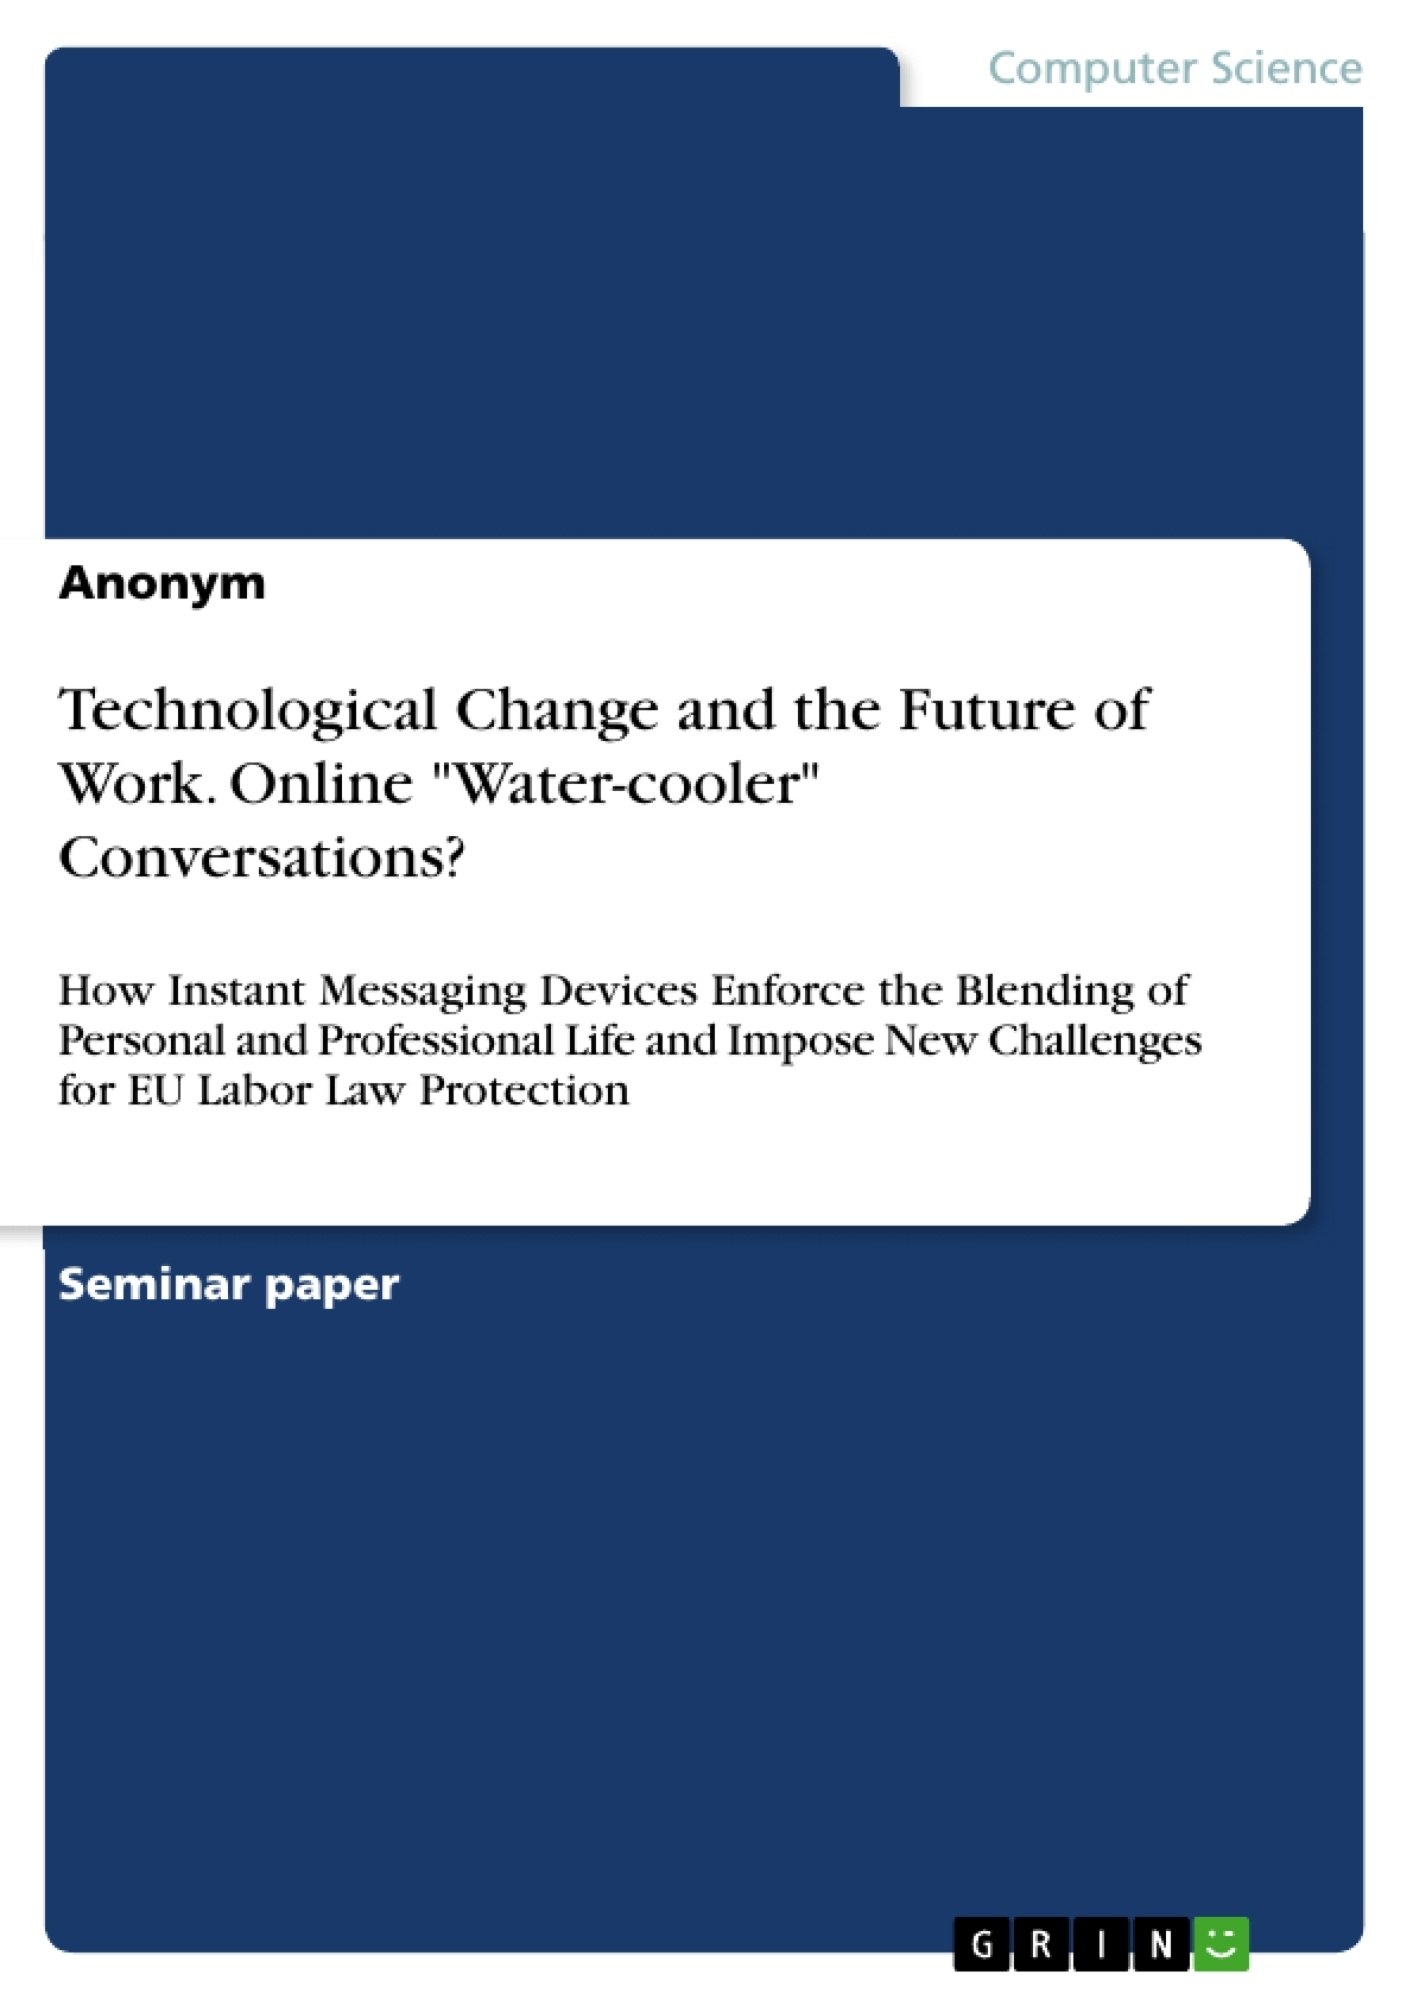 """Title: Technological Change and the Future of Work. Online """"Water-cooler"""" Conversations?"""